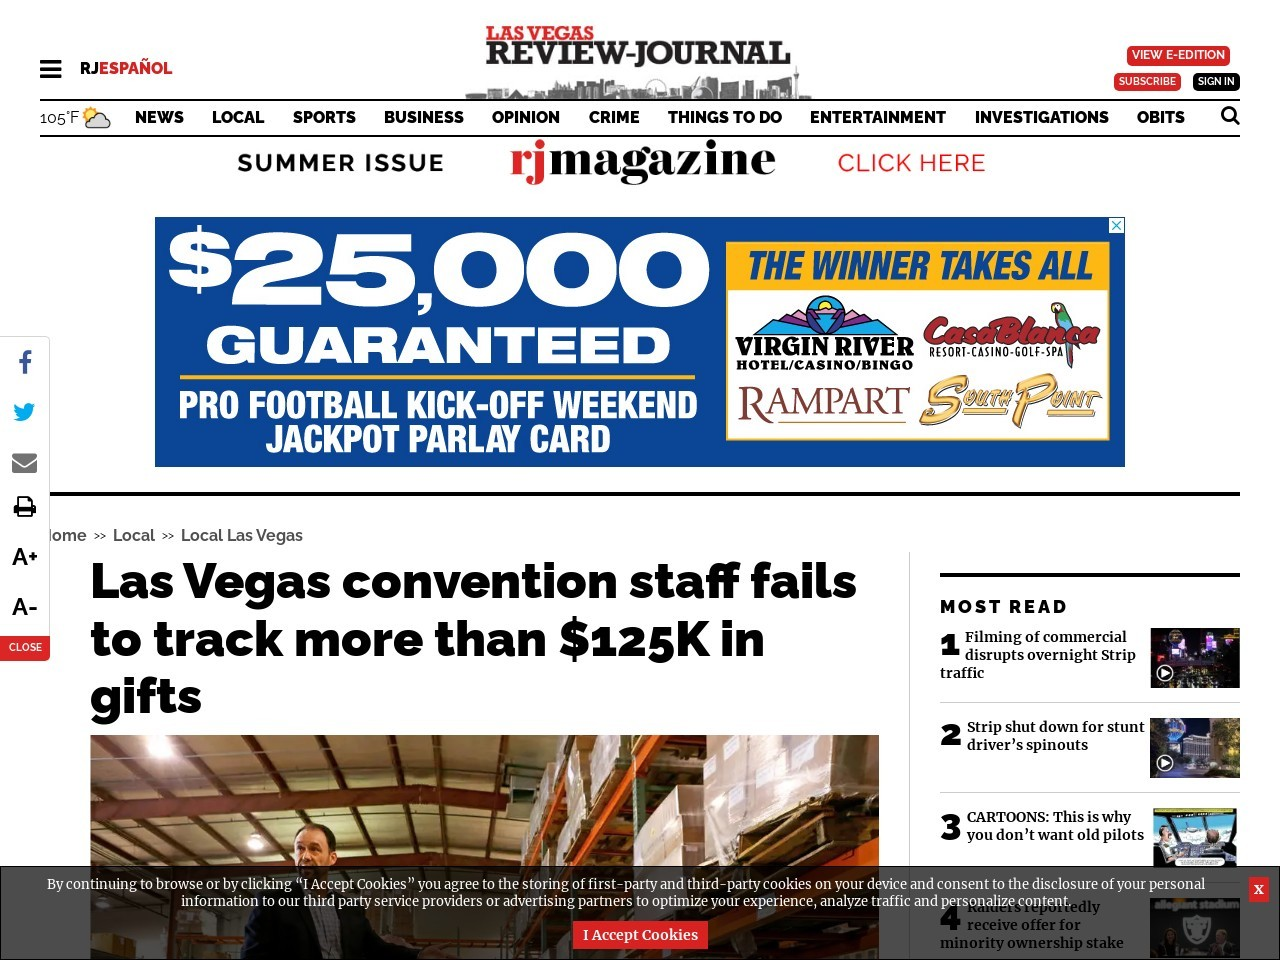 Las Vegas convention staff fails to track more than $125K in gifts